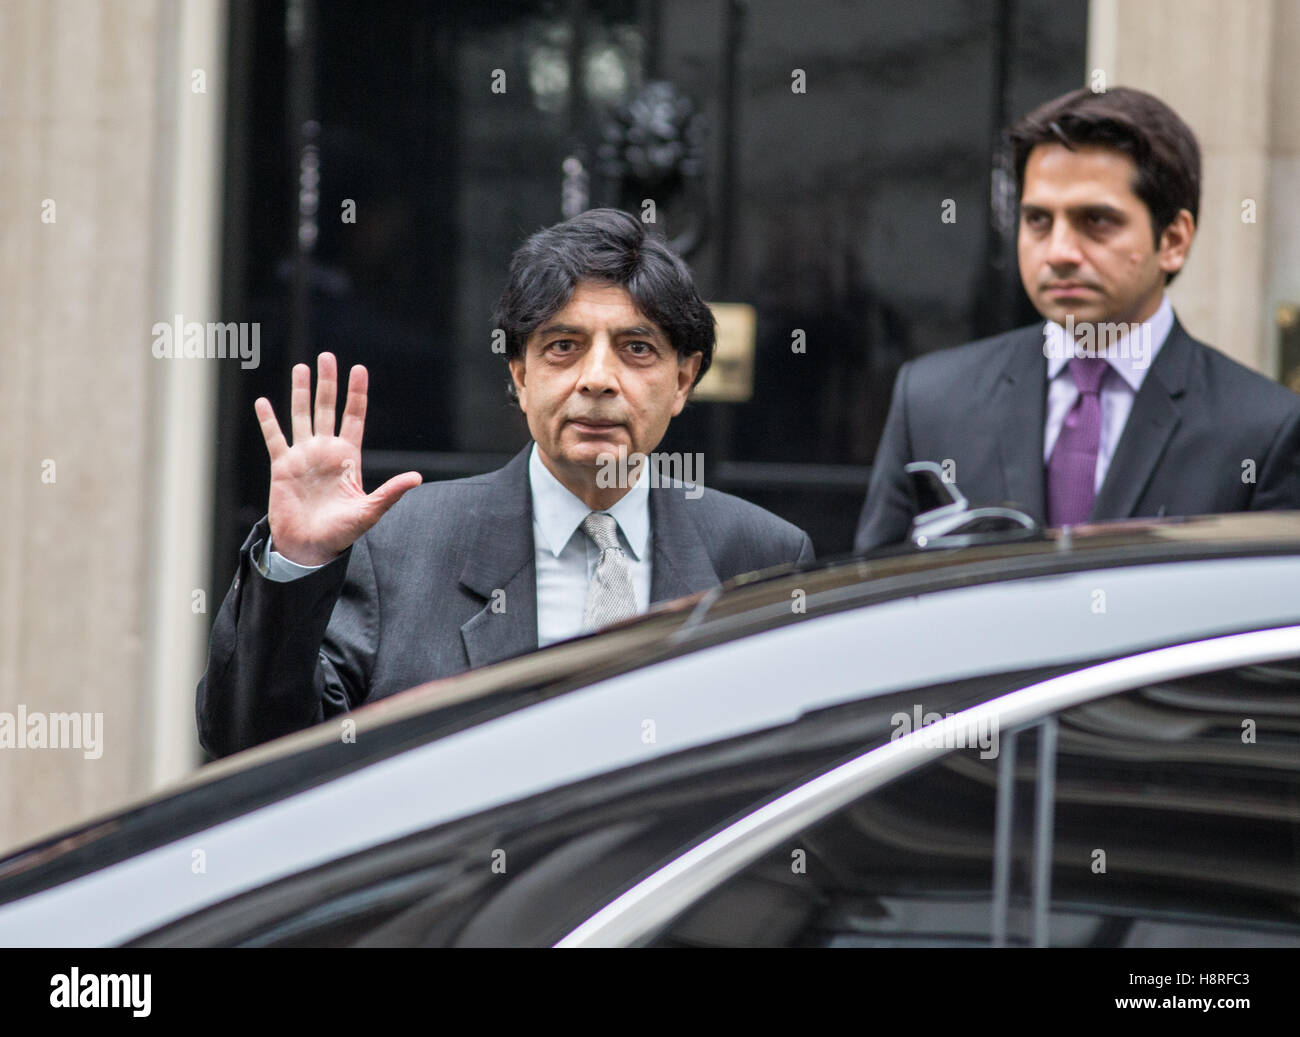 Chaudhry Nisar Ali Khan,Pakistani politician and Minister of Interior and Narcotics Control iat 10 Downing street. - Stock Image